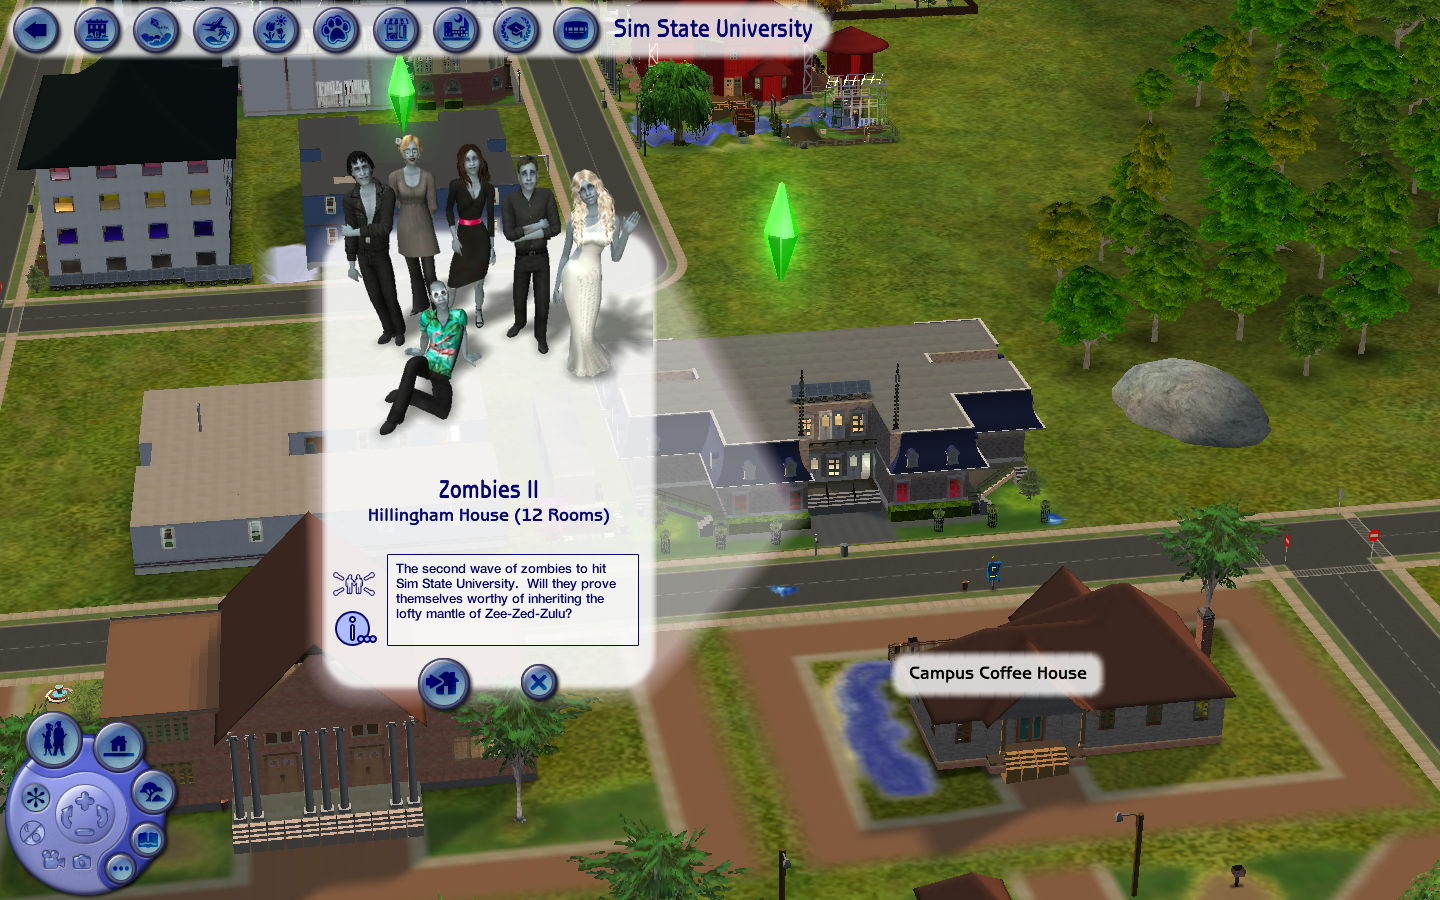 [Image: ShowUsYourSims-Zombies2-1.png]